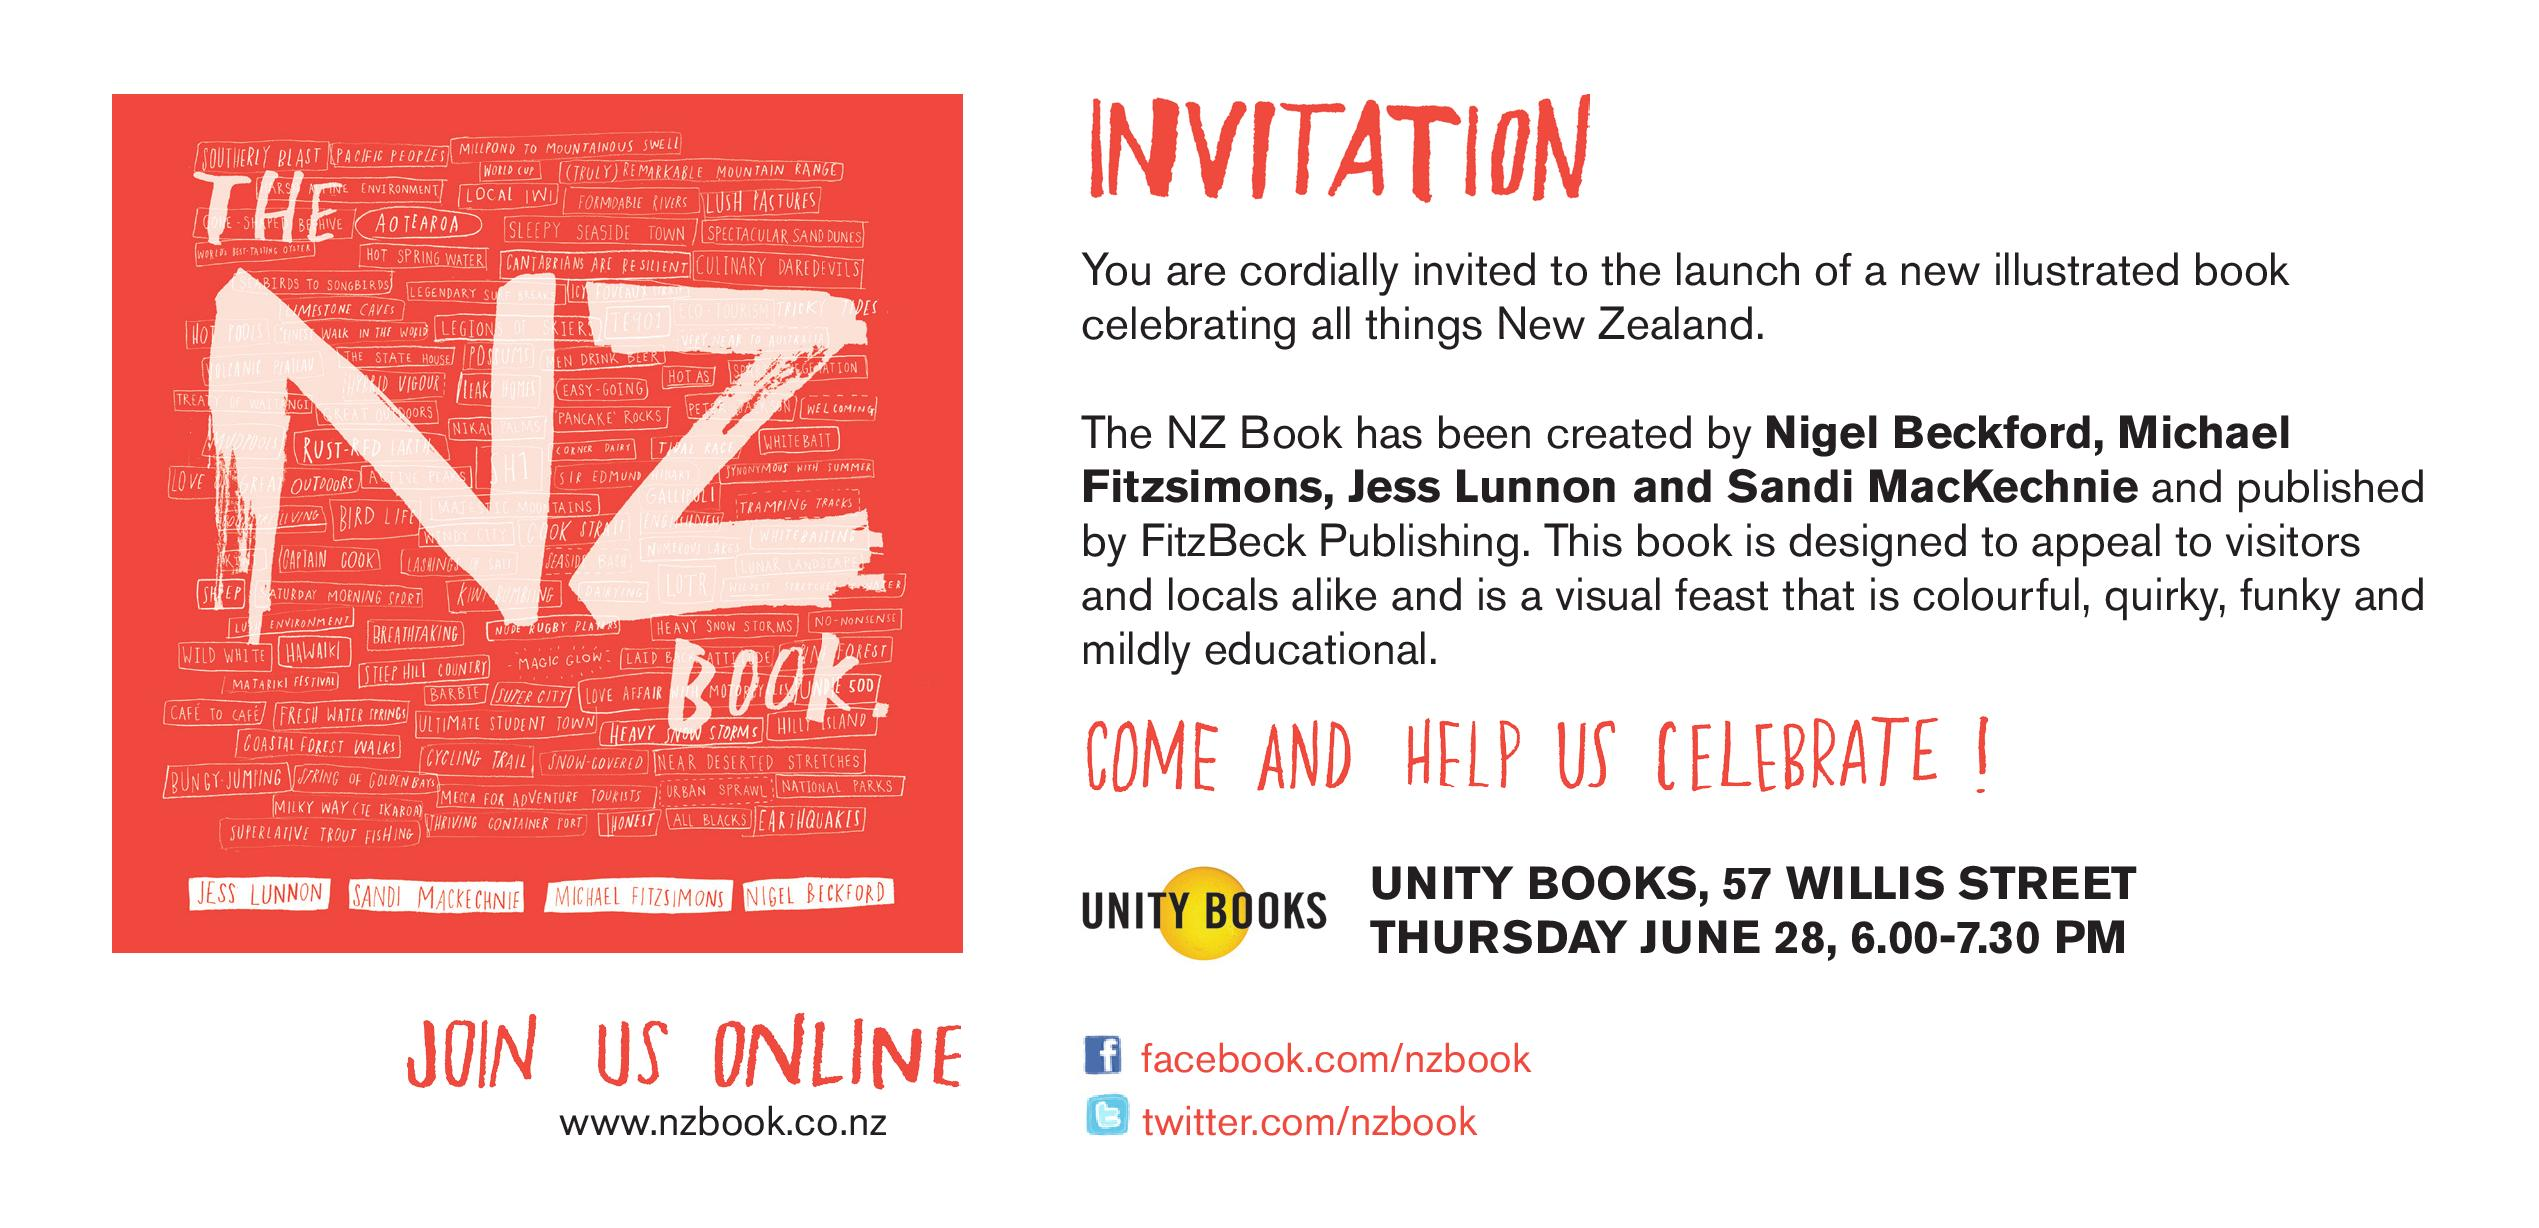 NZ Book Launch, 28th June 2012 | Unity Books